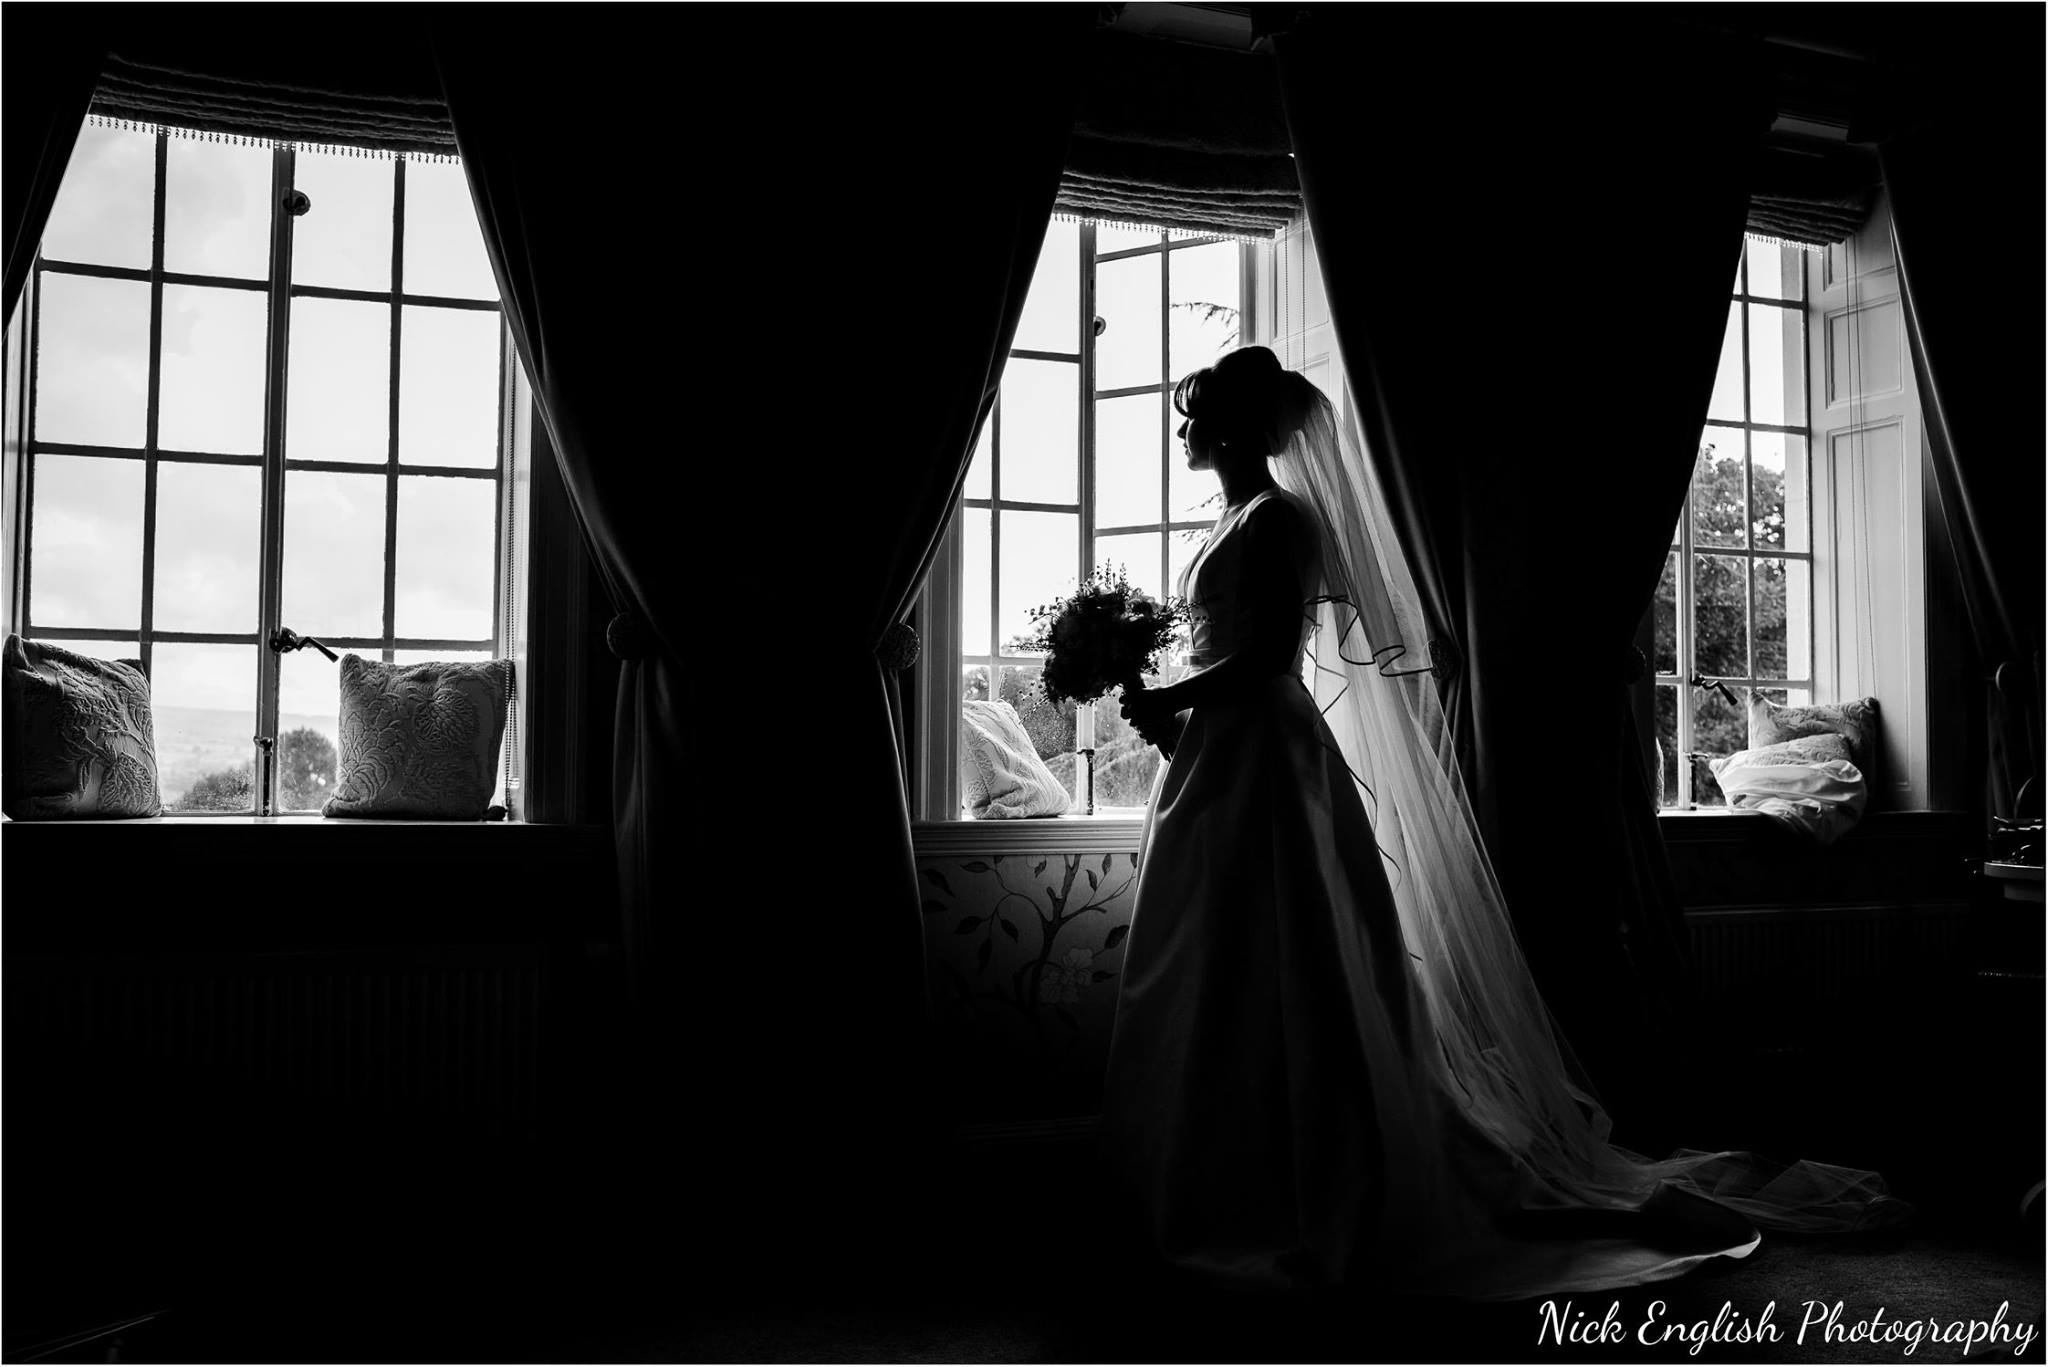 Canon 5D3 + 35L @ f2.8 - little bit of colour fringing here where the bouquet intersected with the window - fixed in the colour version - but I prefer B&W here anyway :)